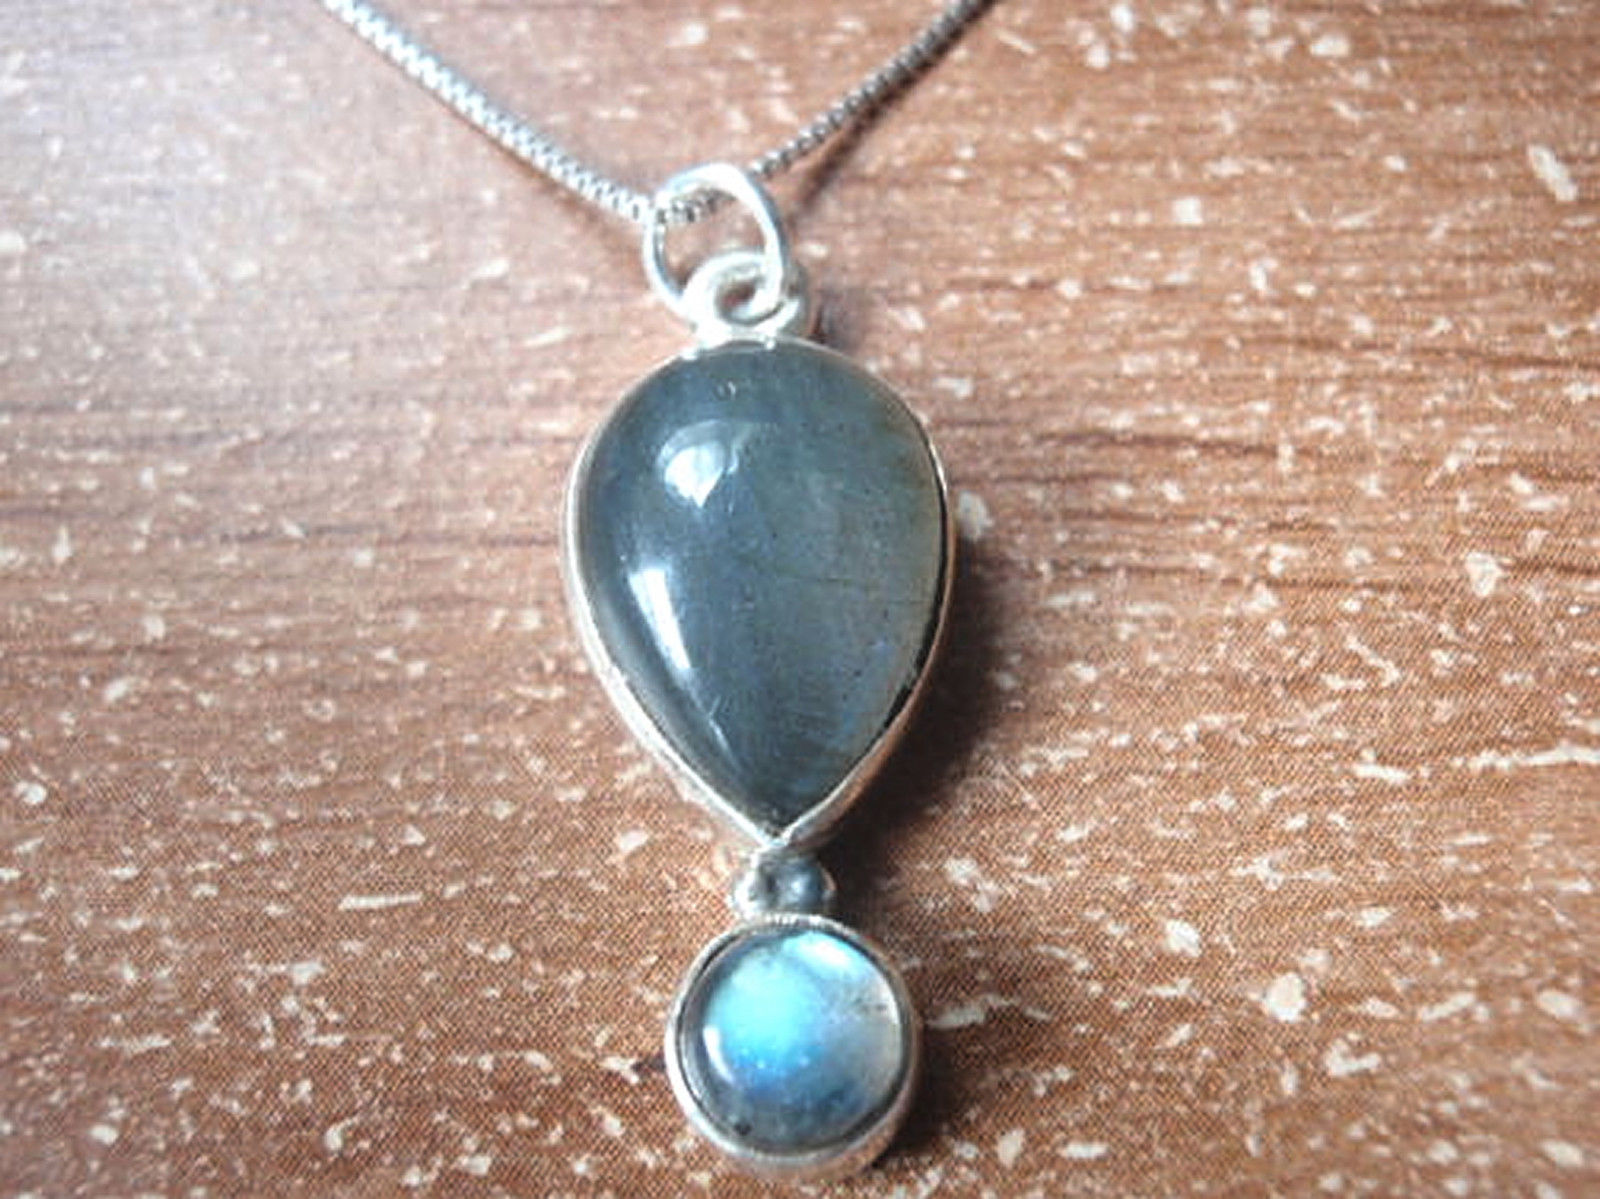 Primary image for Labradorite Double Gem Pendant 925 Sterling Silver Corona Sun Jewelry d16t